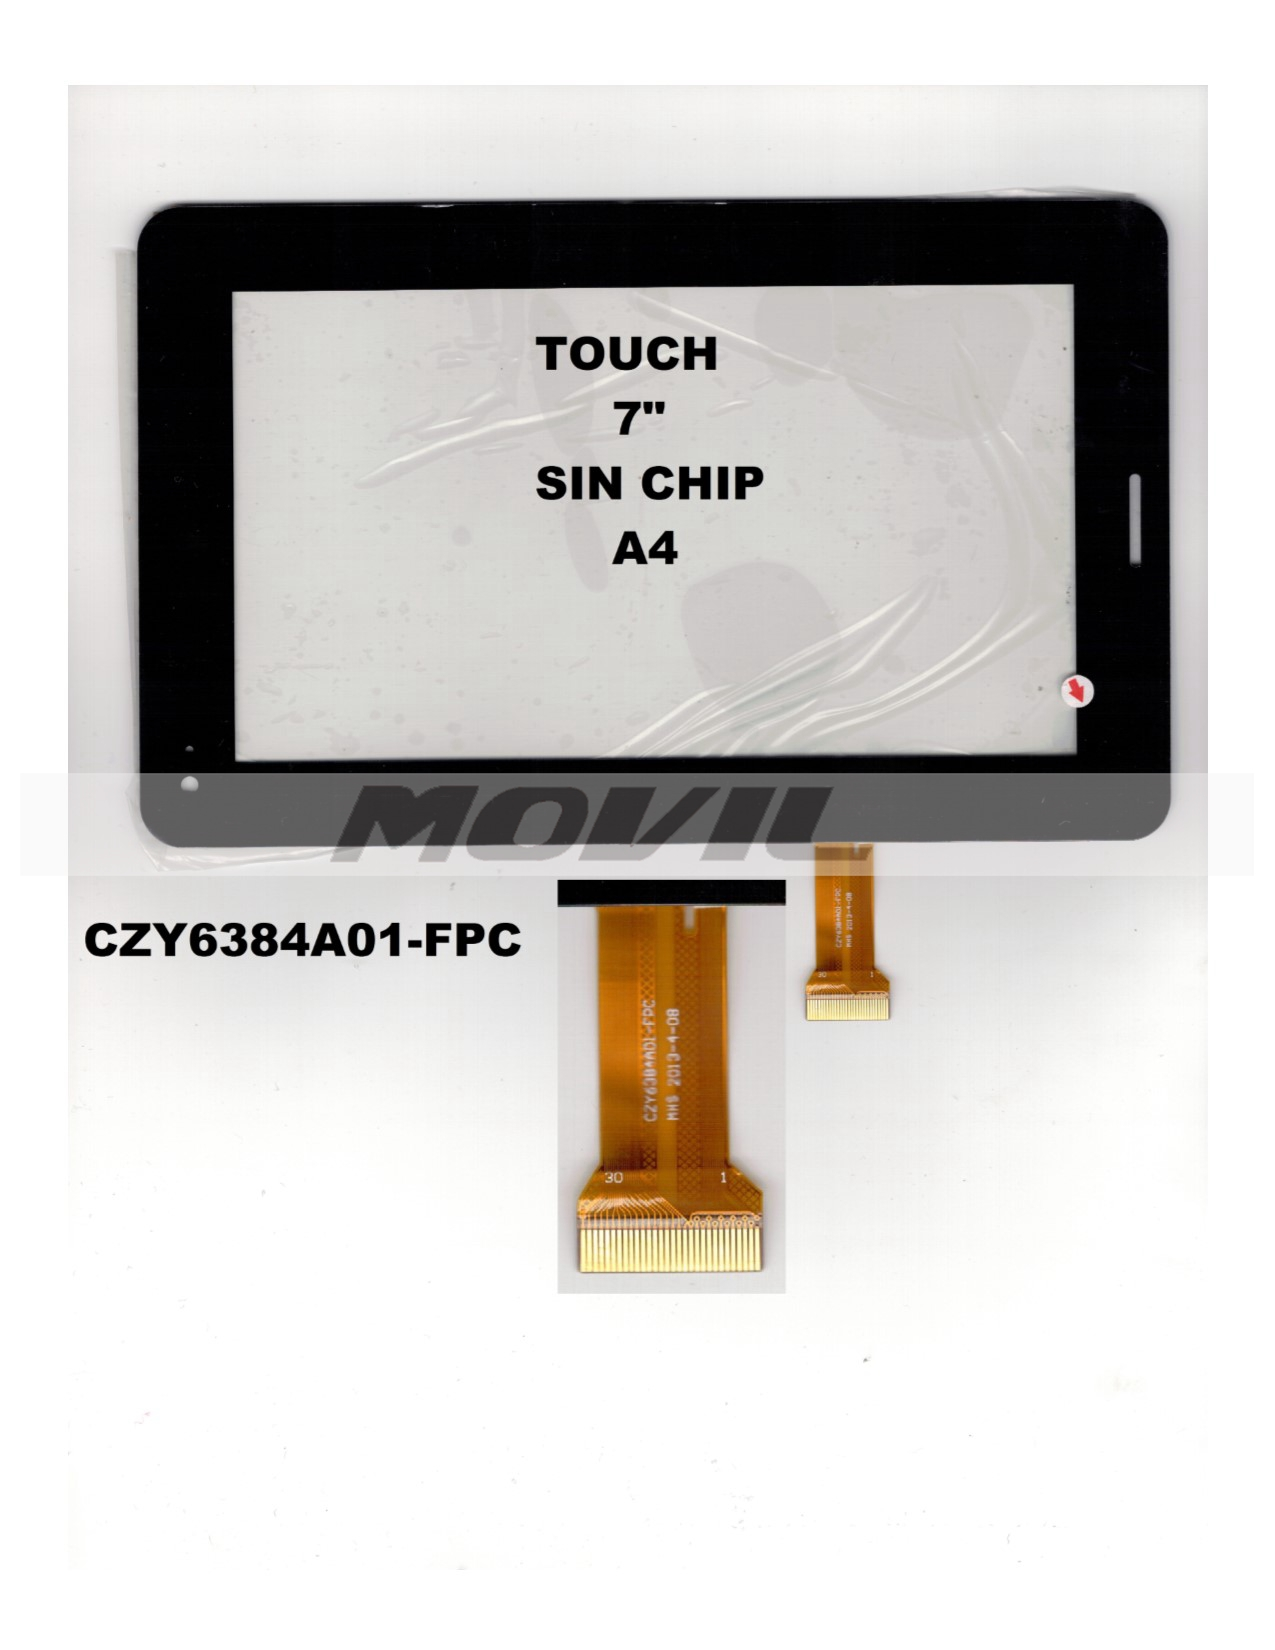 Touch tactil para tablet flex 7 inch SIN CHIP A4 CZY6384A01-FPC